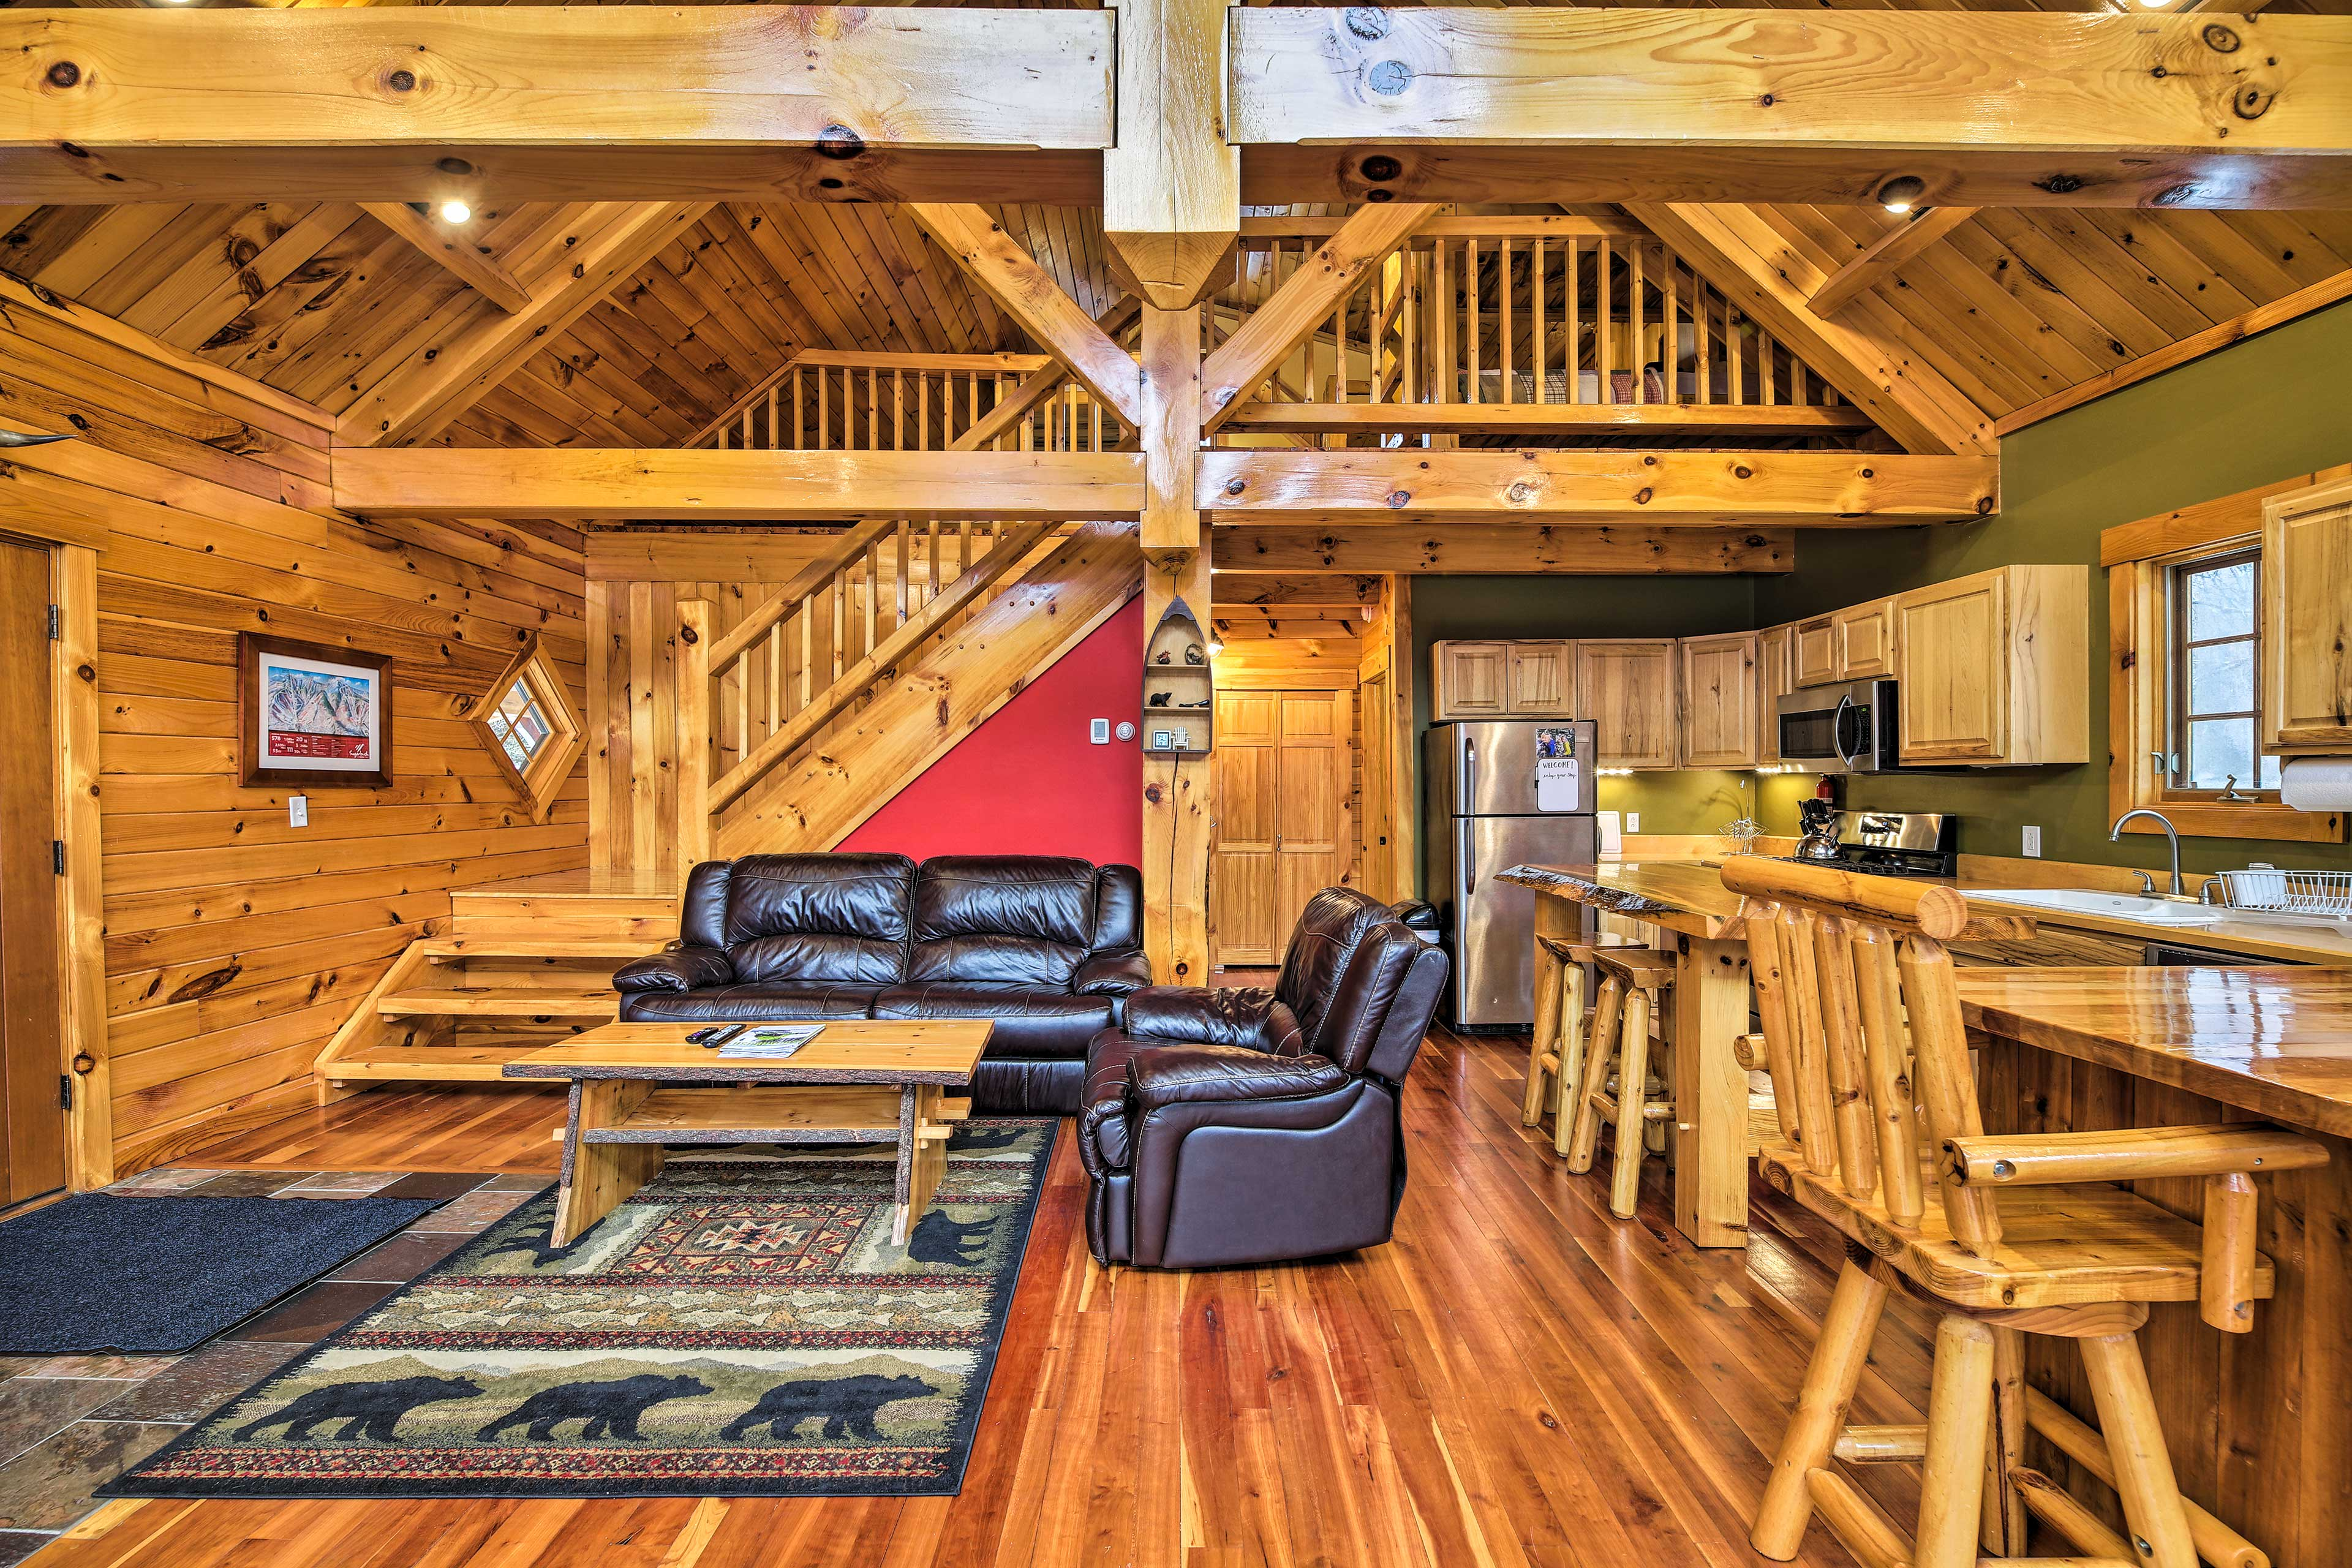 You'll find hardwood floors throughout.